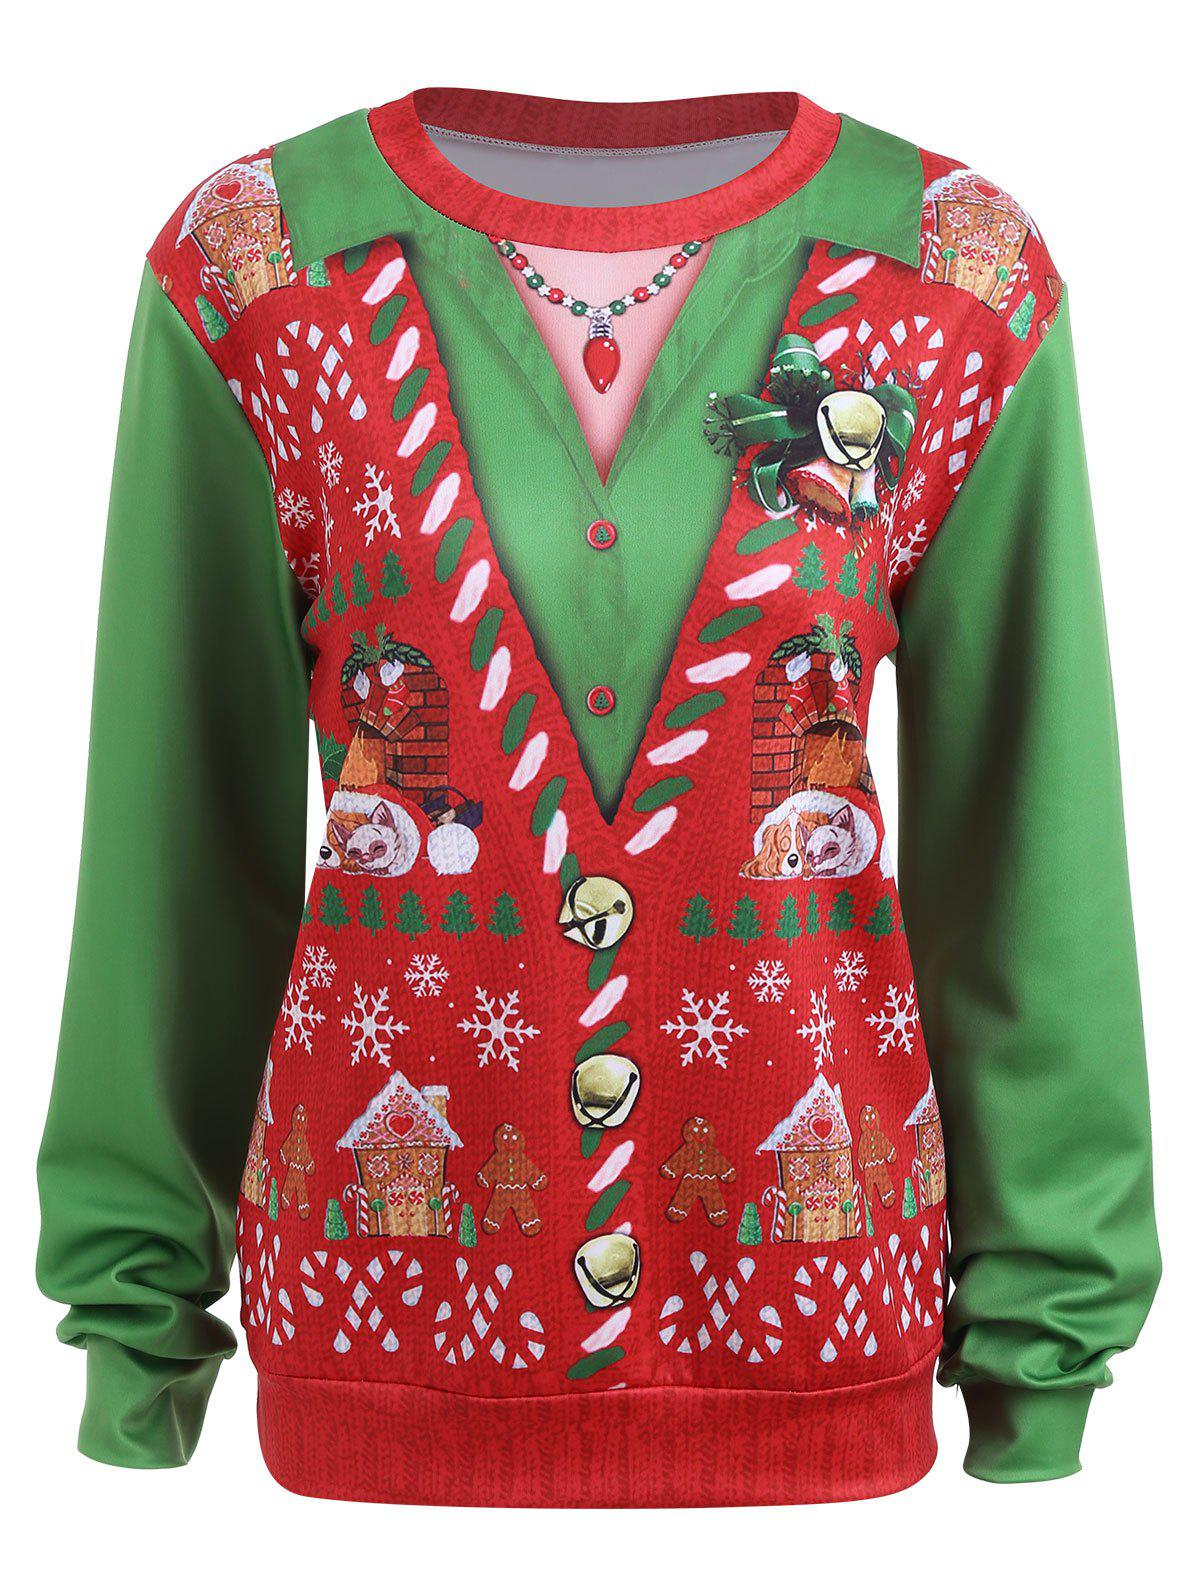 Plus Size Light Up Christmas Snow Ugly SweatshirtWOMEN<br><br>Size: 3XL; Color: RED; Material: Cotton Blend,Polyester; Shirt Length: Regular; Sleeve Length: Full; Style: Fashion; Pattern Style: Print; Season: Fall,Winter; Weight: 0.3600kg; Package Contents: 1 x Sweatshirt;